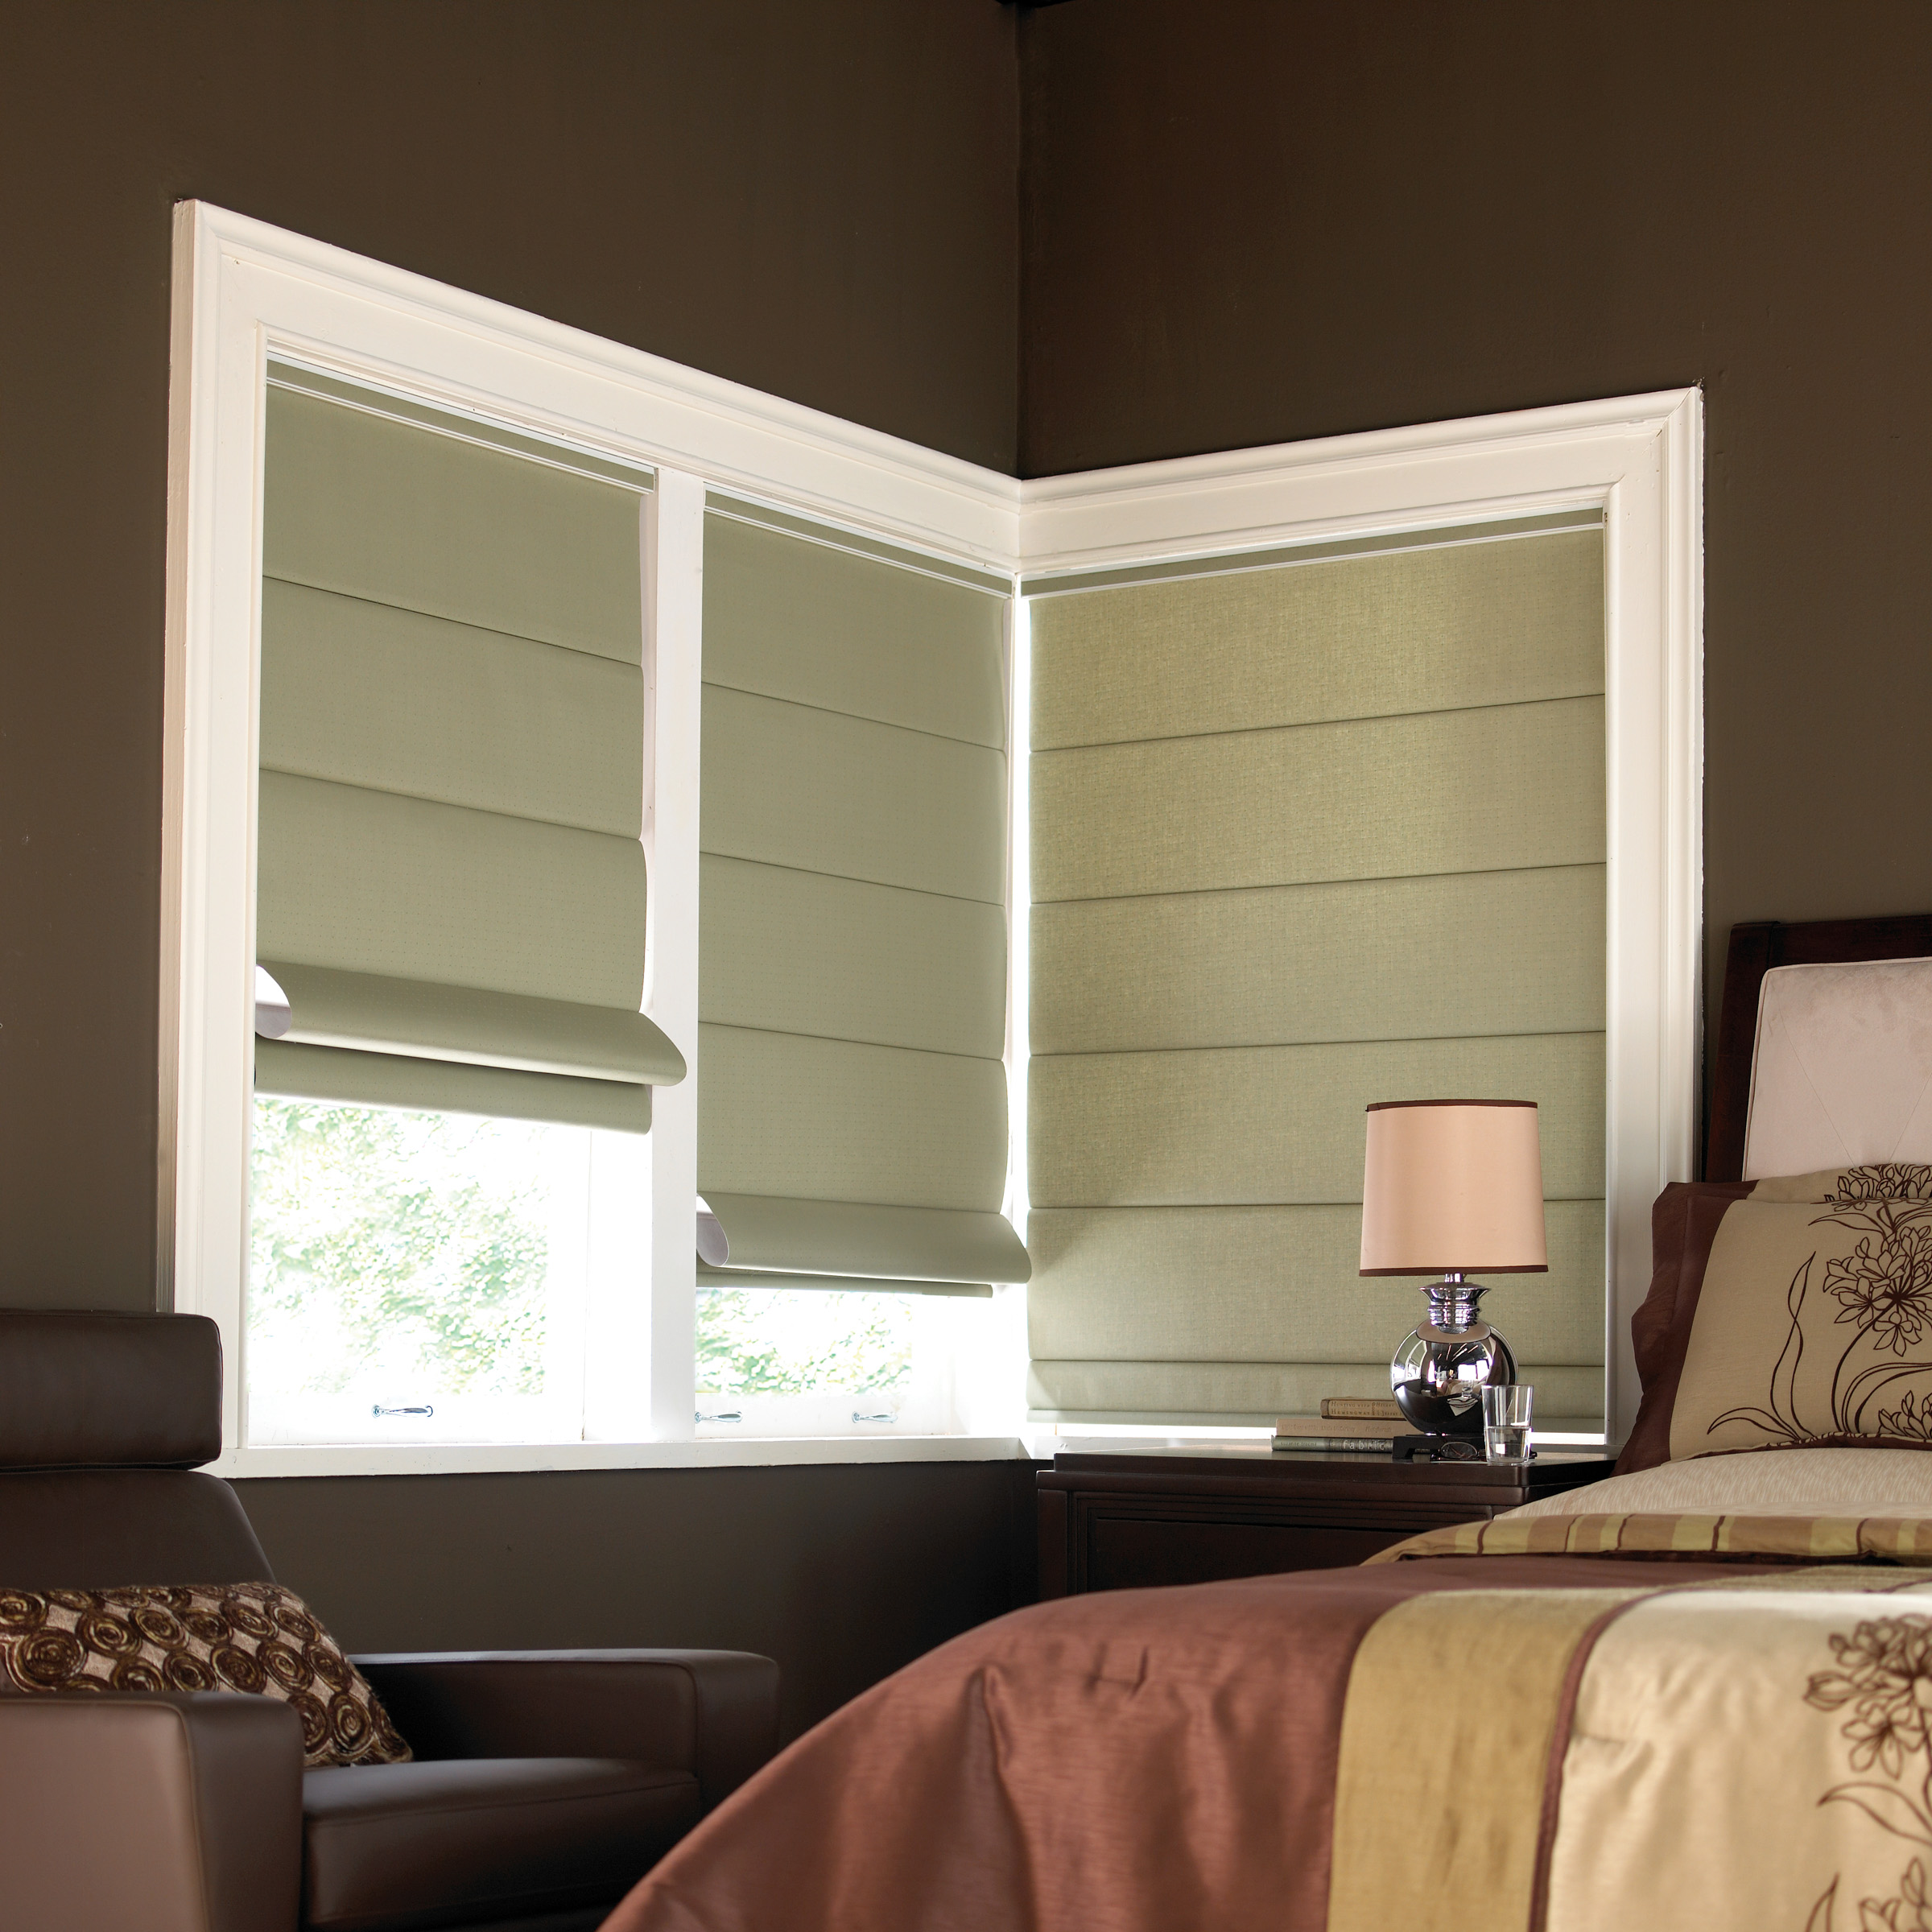 B2d Super Value Luxury Roman Shades